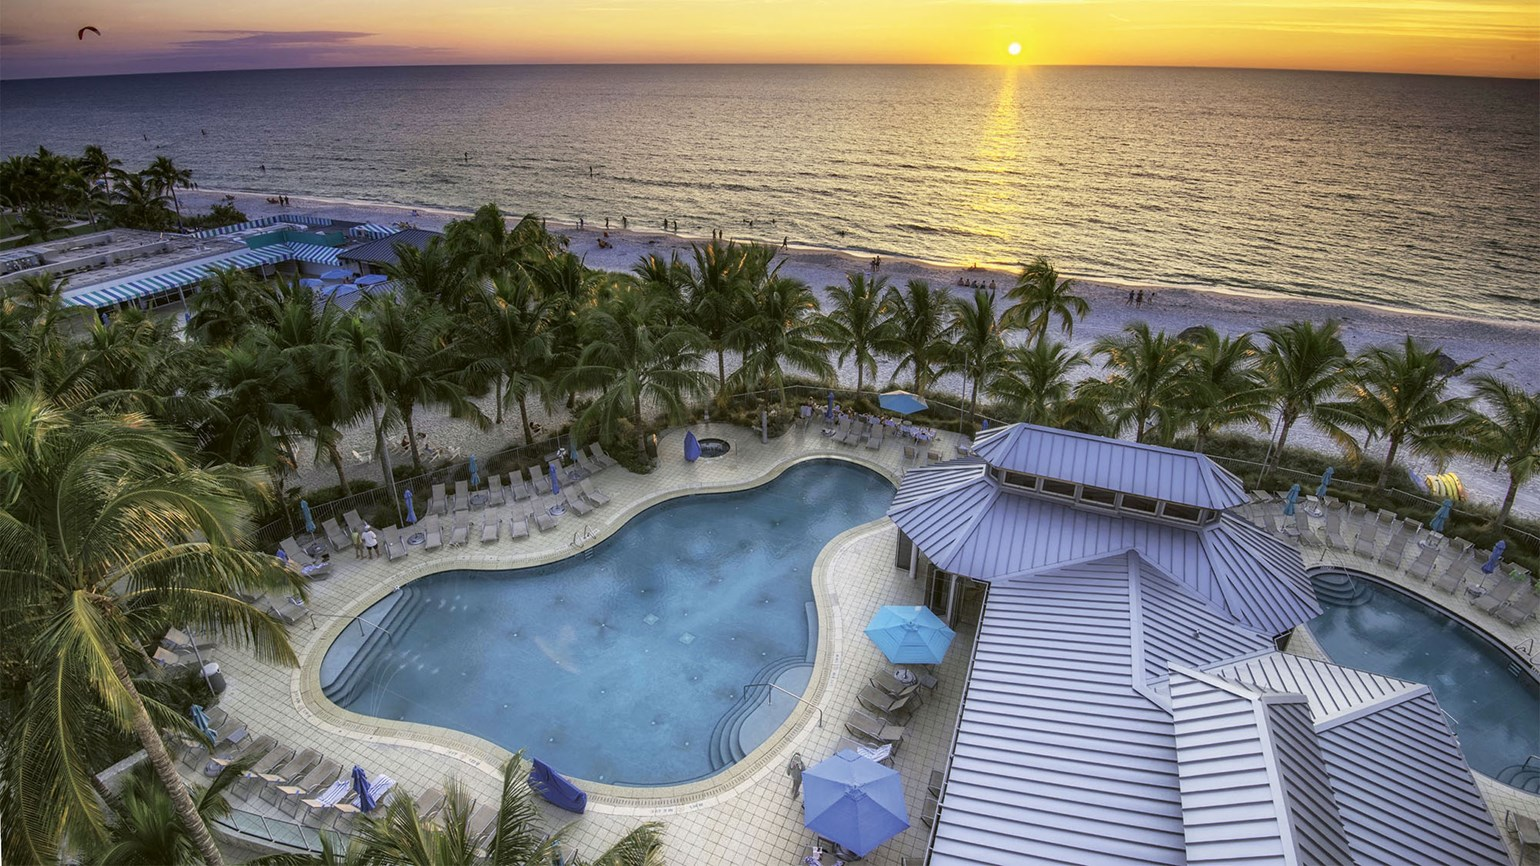 Naples Beach Hotel & Golf Club in Florida offers 20% off or free-night deal